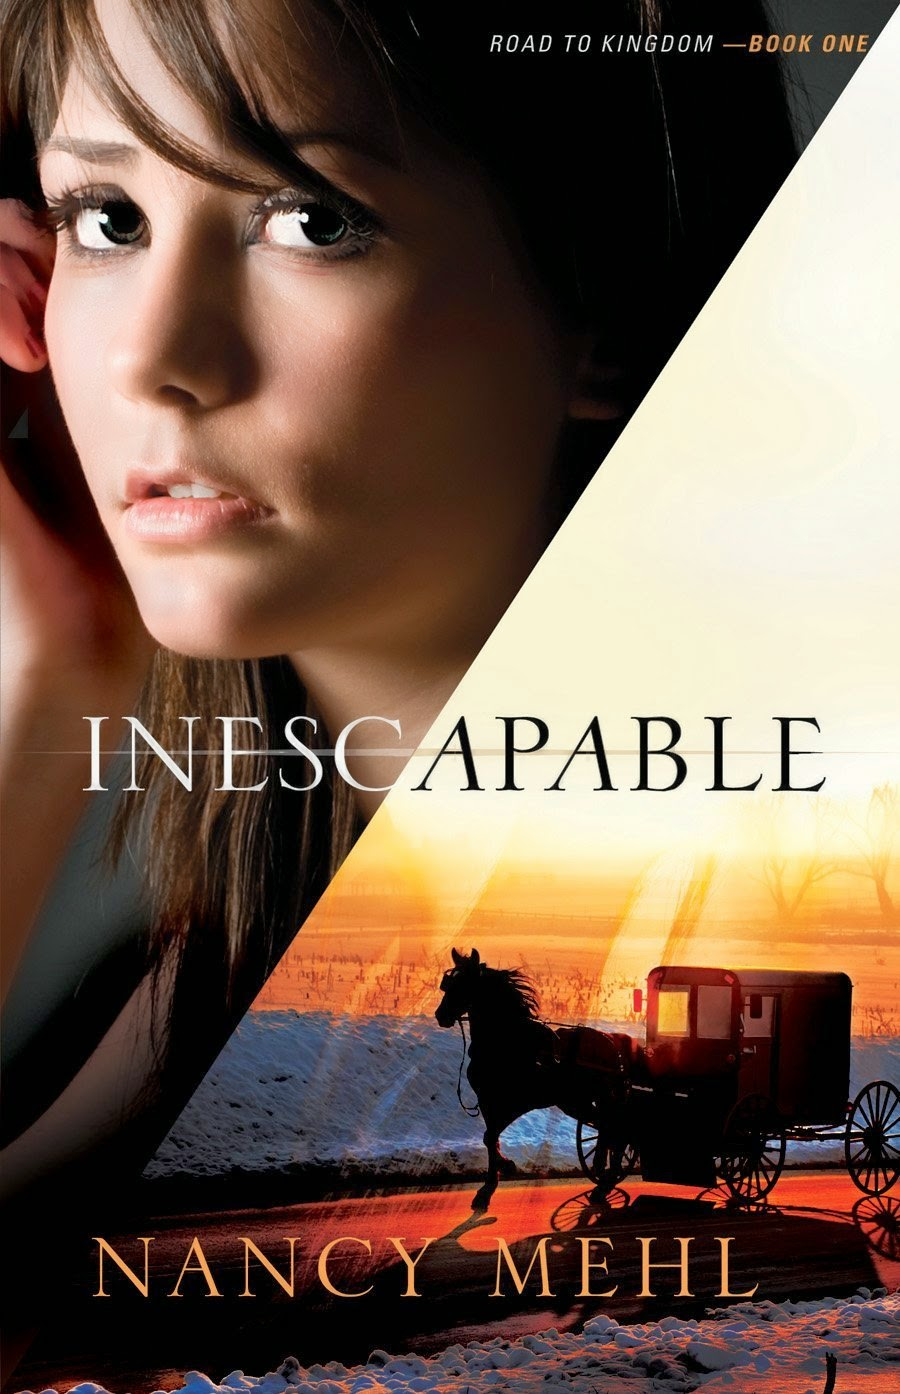 http://www.amazon.com/Inescapable-Road-Kingdom-Book-1-ebook/dp/B0073UNAZC/ref=sr_1_2?ie=UTF8&qid=1398937188&sr=8-2&keywords=inescapable